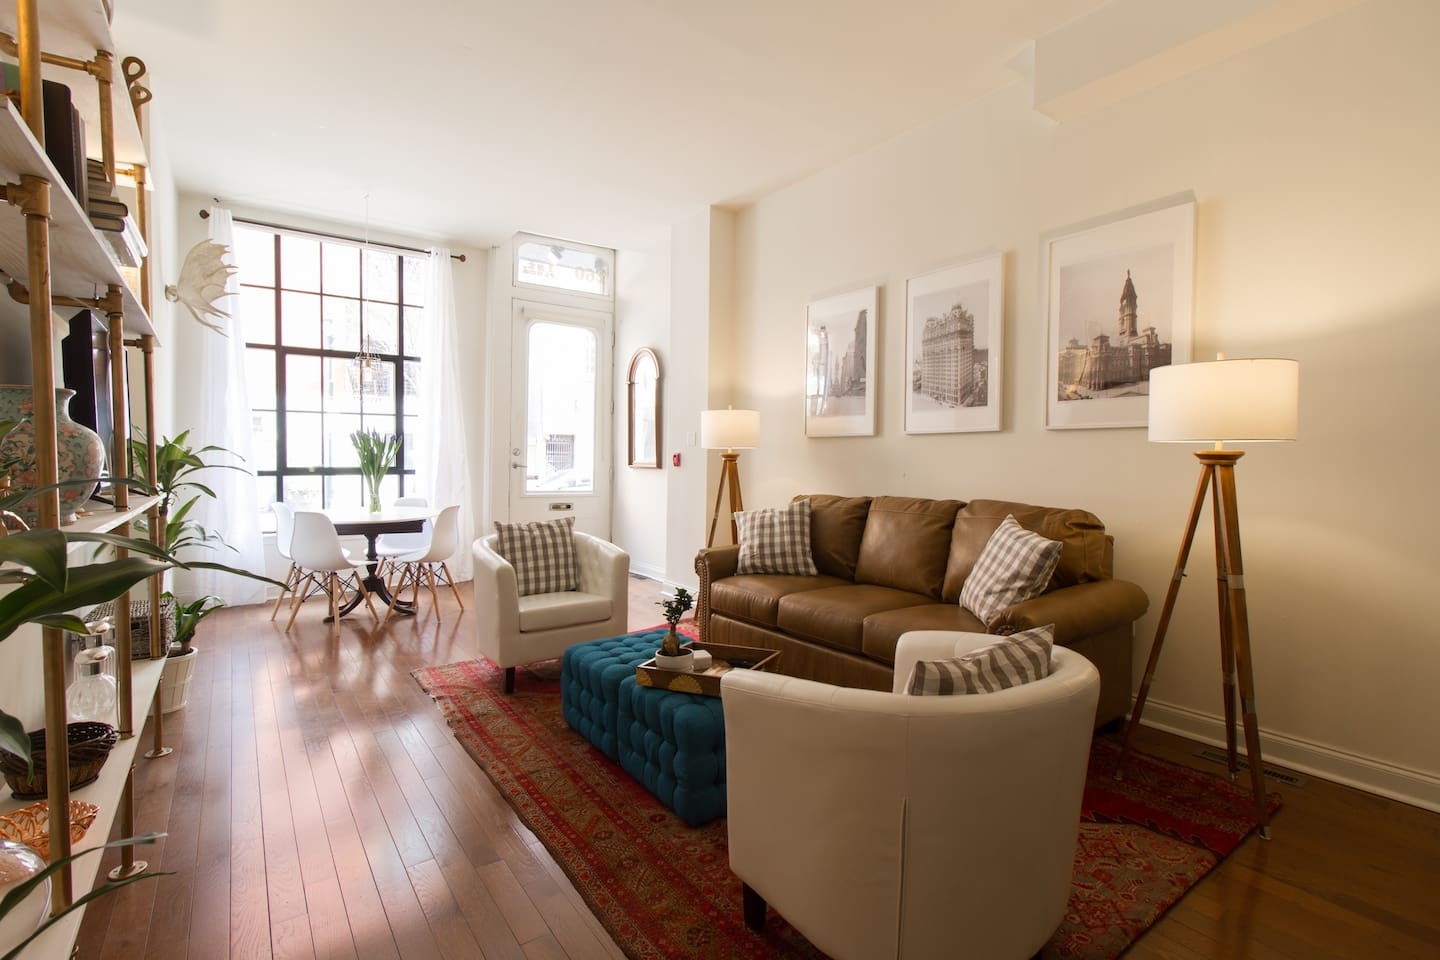 The bright and airy living space is great for entertaining clients/guests while also comfortable enough to kick back and watch TV.